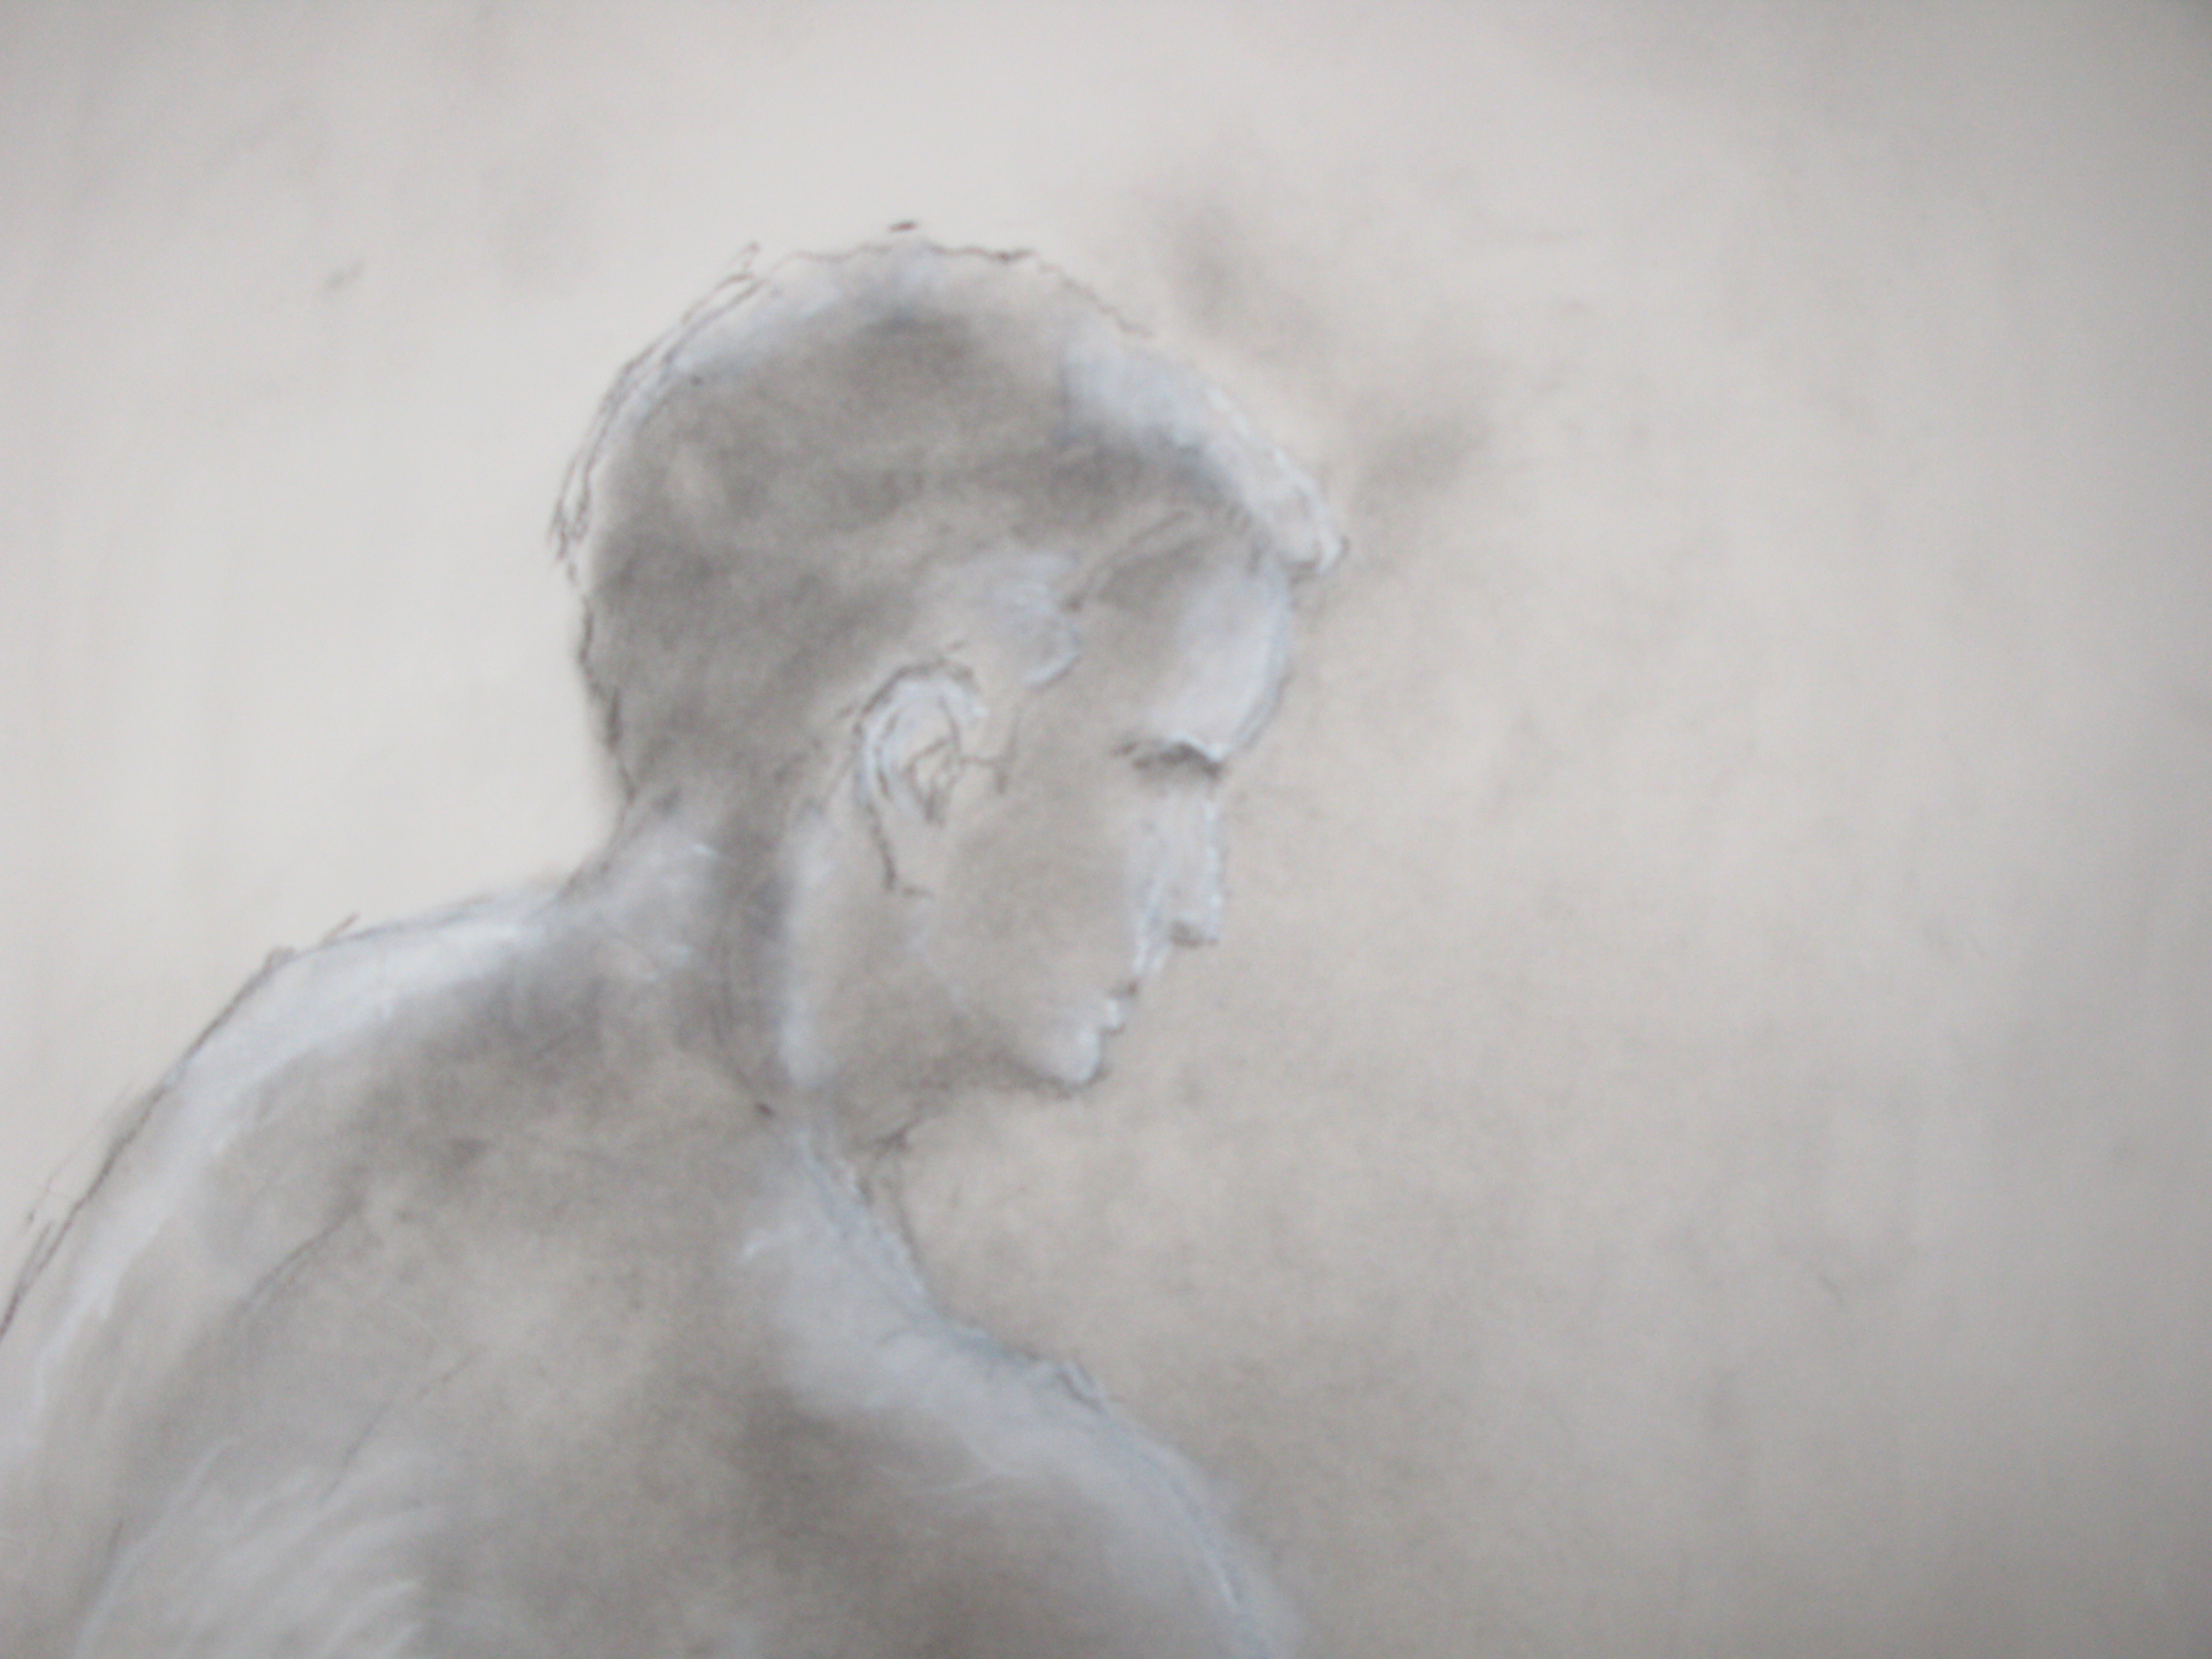 Steve, powdered charcoal, white chalk on paper